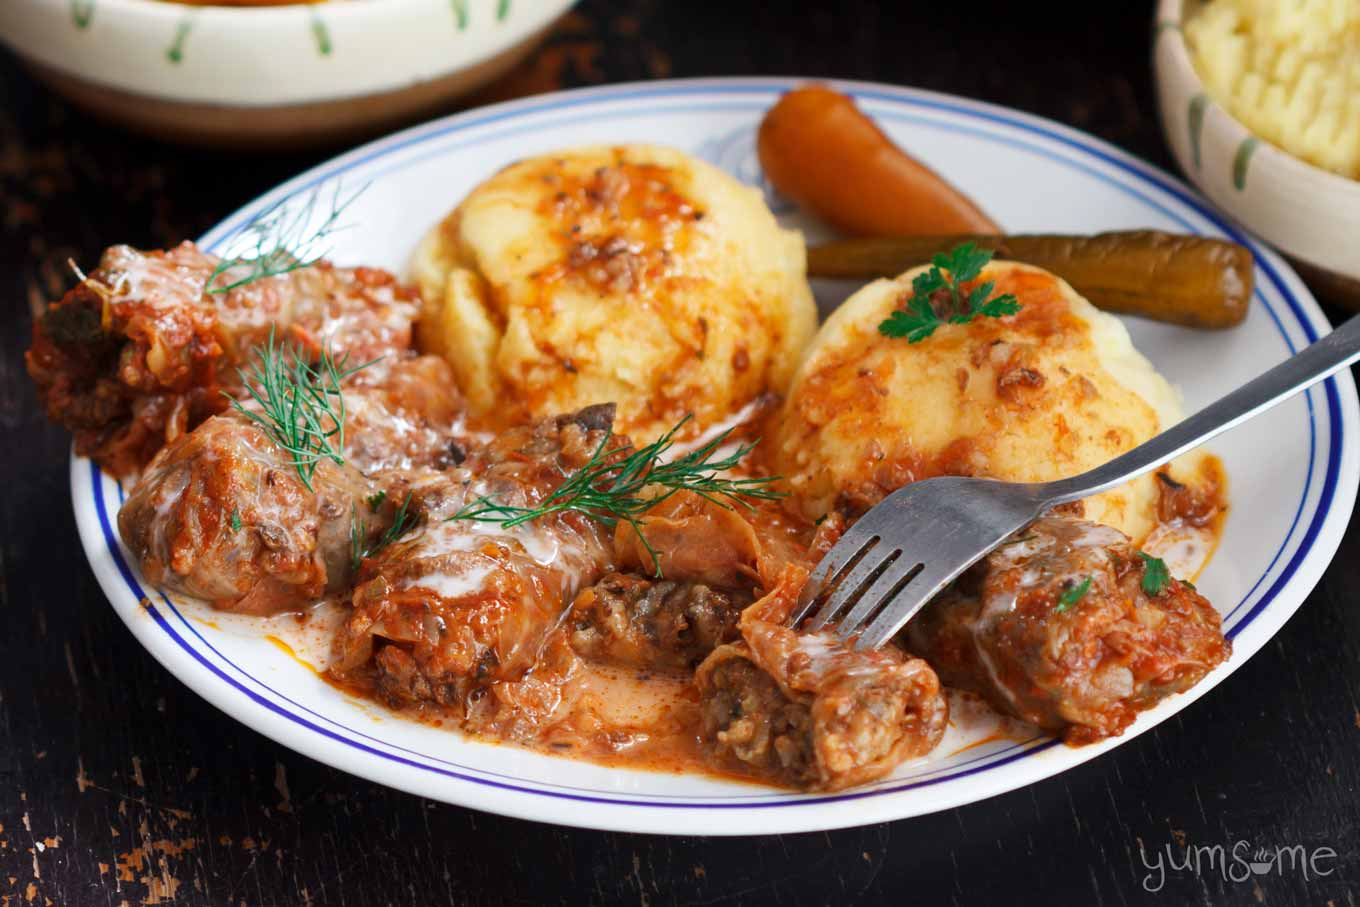 a plate of romanian cabbage rolls with mashed potatoes and mamaliga | yumsome.com